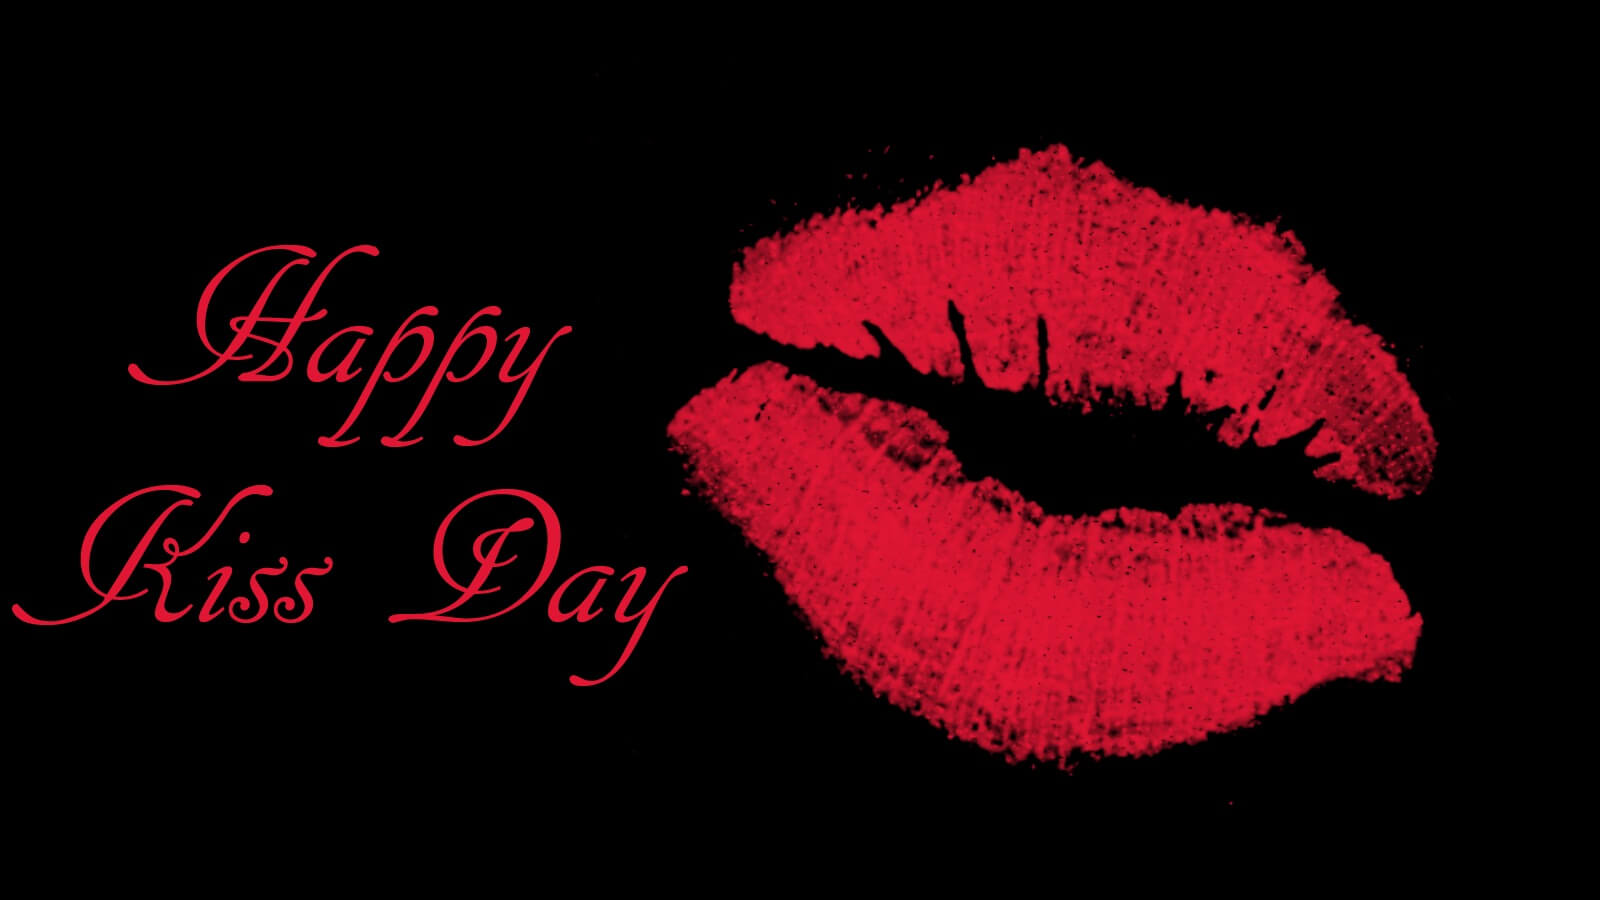 happy kiss day wishes red lips love valentine facebook image hd wallpaper